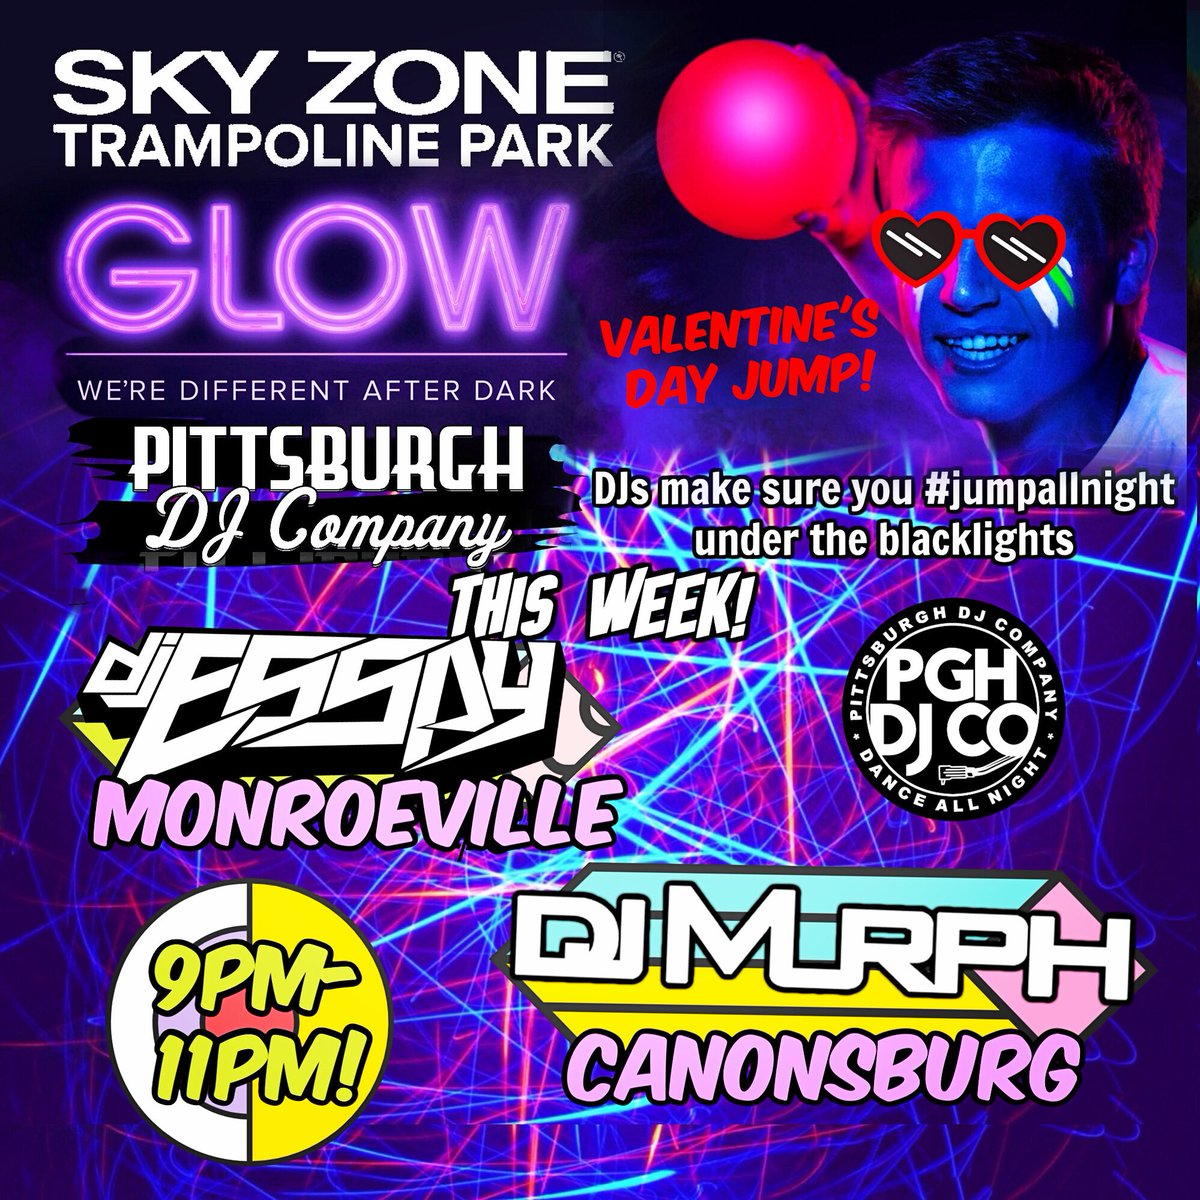 We have something fun for you to do! #jumpallnight at #2locations of #SkyZone with a real #pittsburghdj rockin the spot at #GLOW - the best #blacklightparty around! #wearneon #PittsburghDJ #PittsburghFamilyFun #PittsburghNightlife #ThingsToDoInPittsburgh #ValentinesDayPittsburghpic.twitter.com/8KdLWJPAkY – at Sky Zone